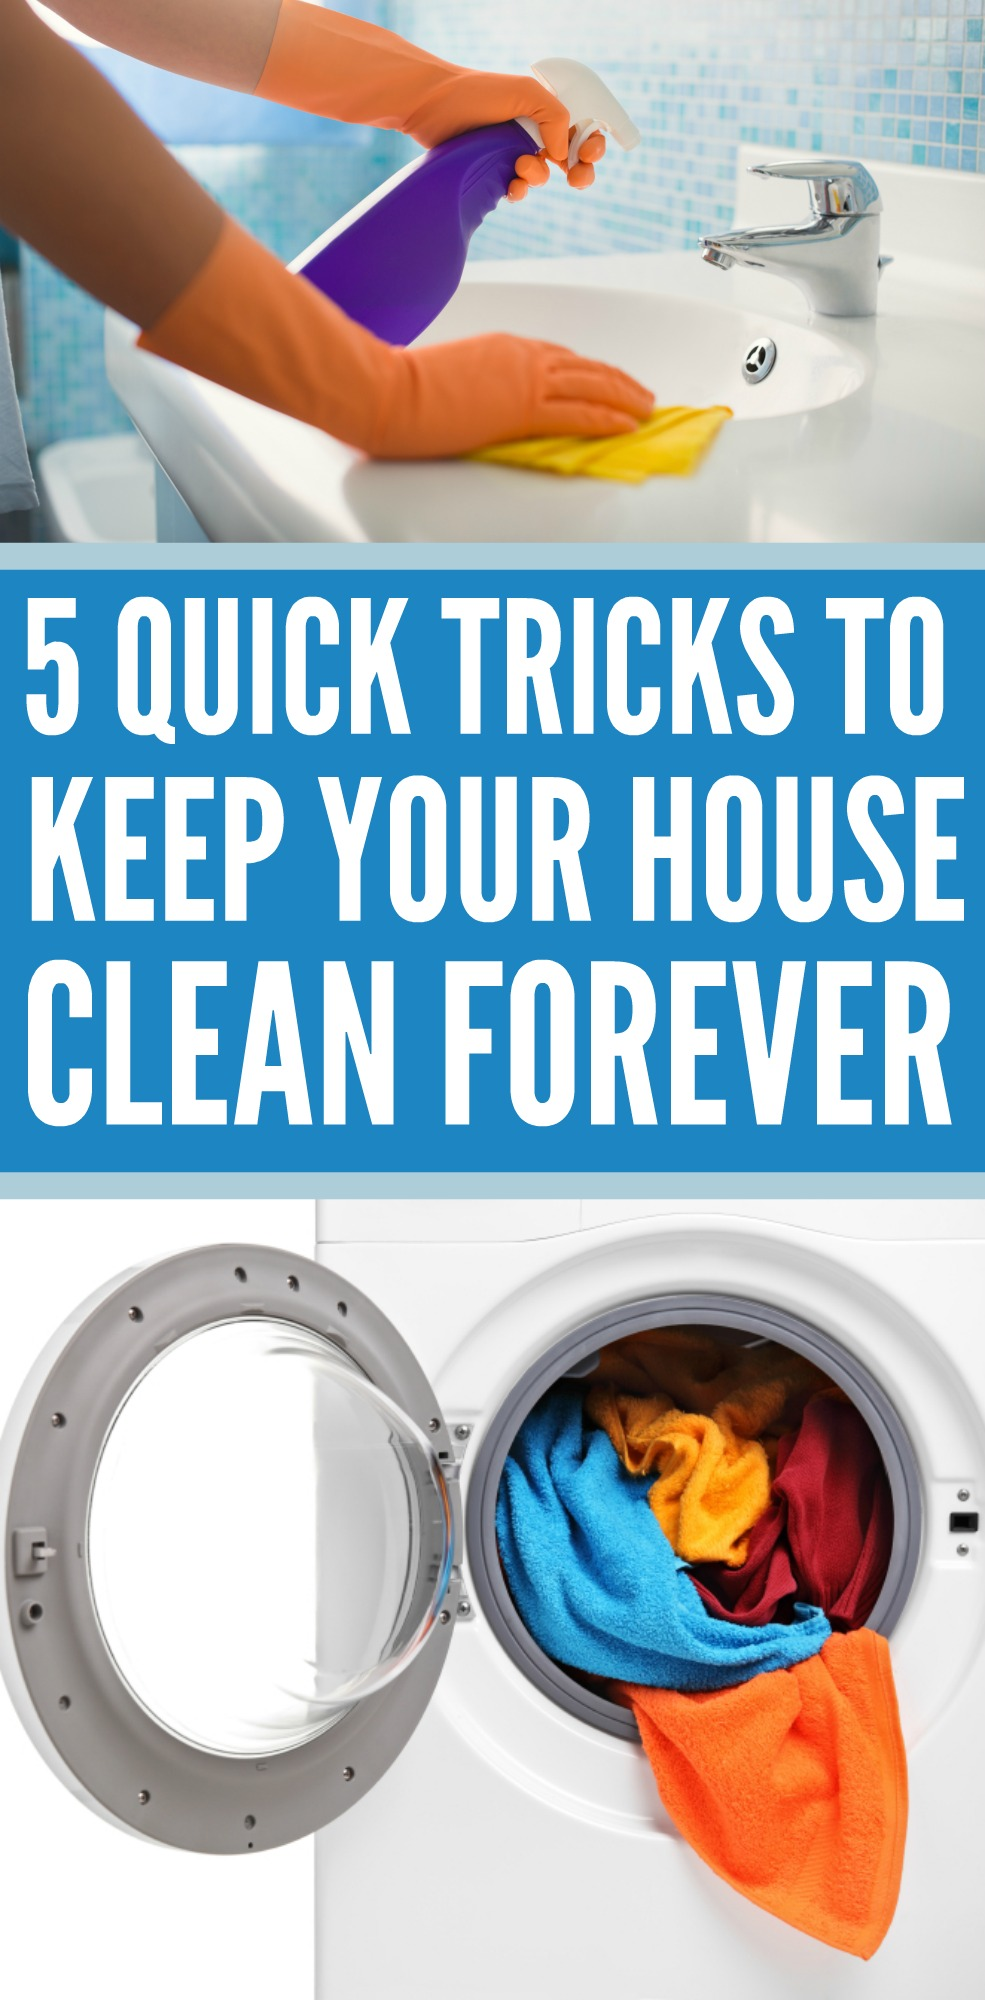 5 Quick Tricks To Keep Your House Clean Forever Written